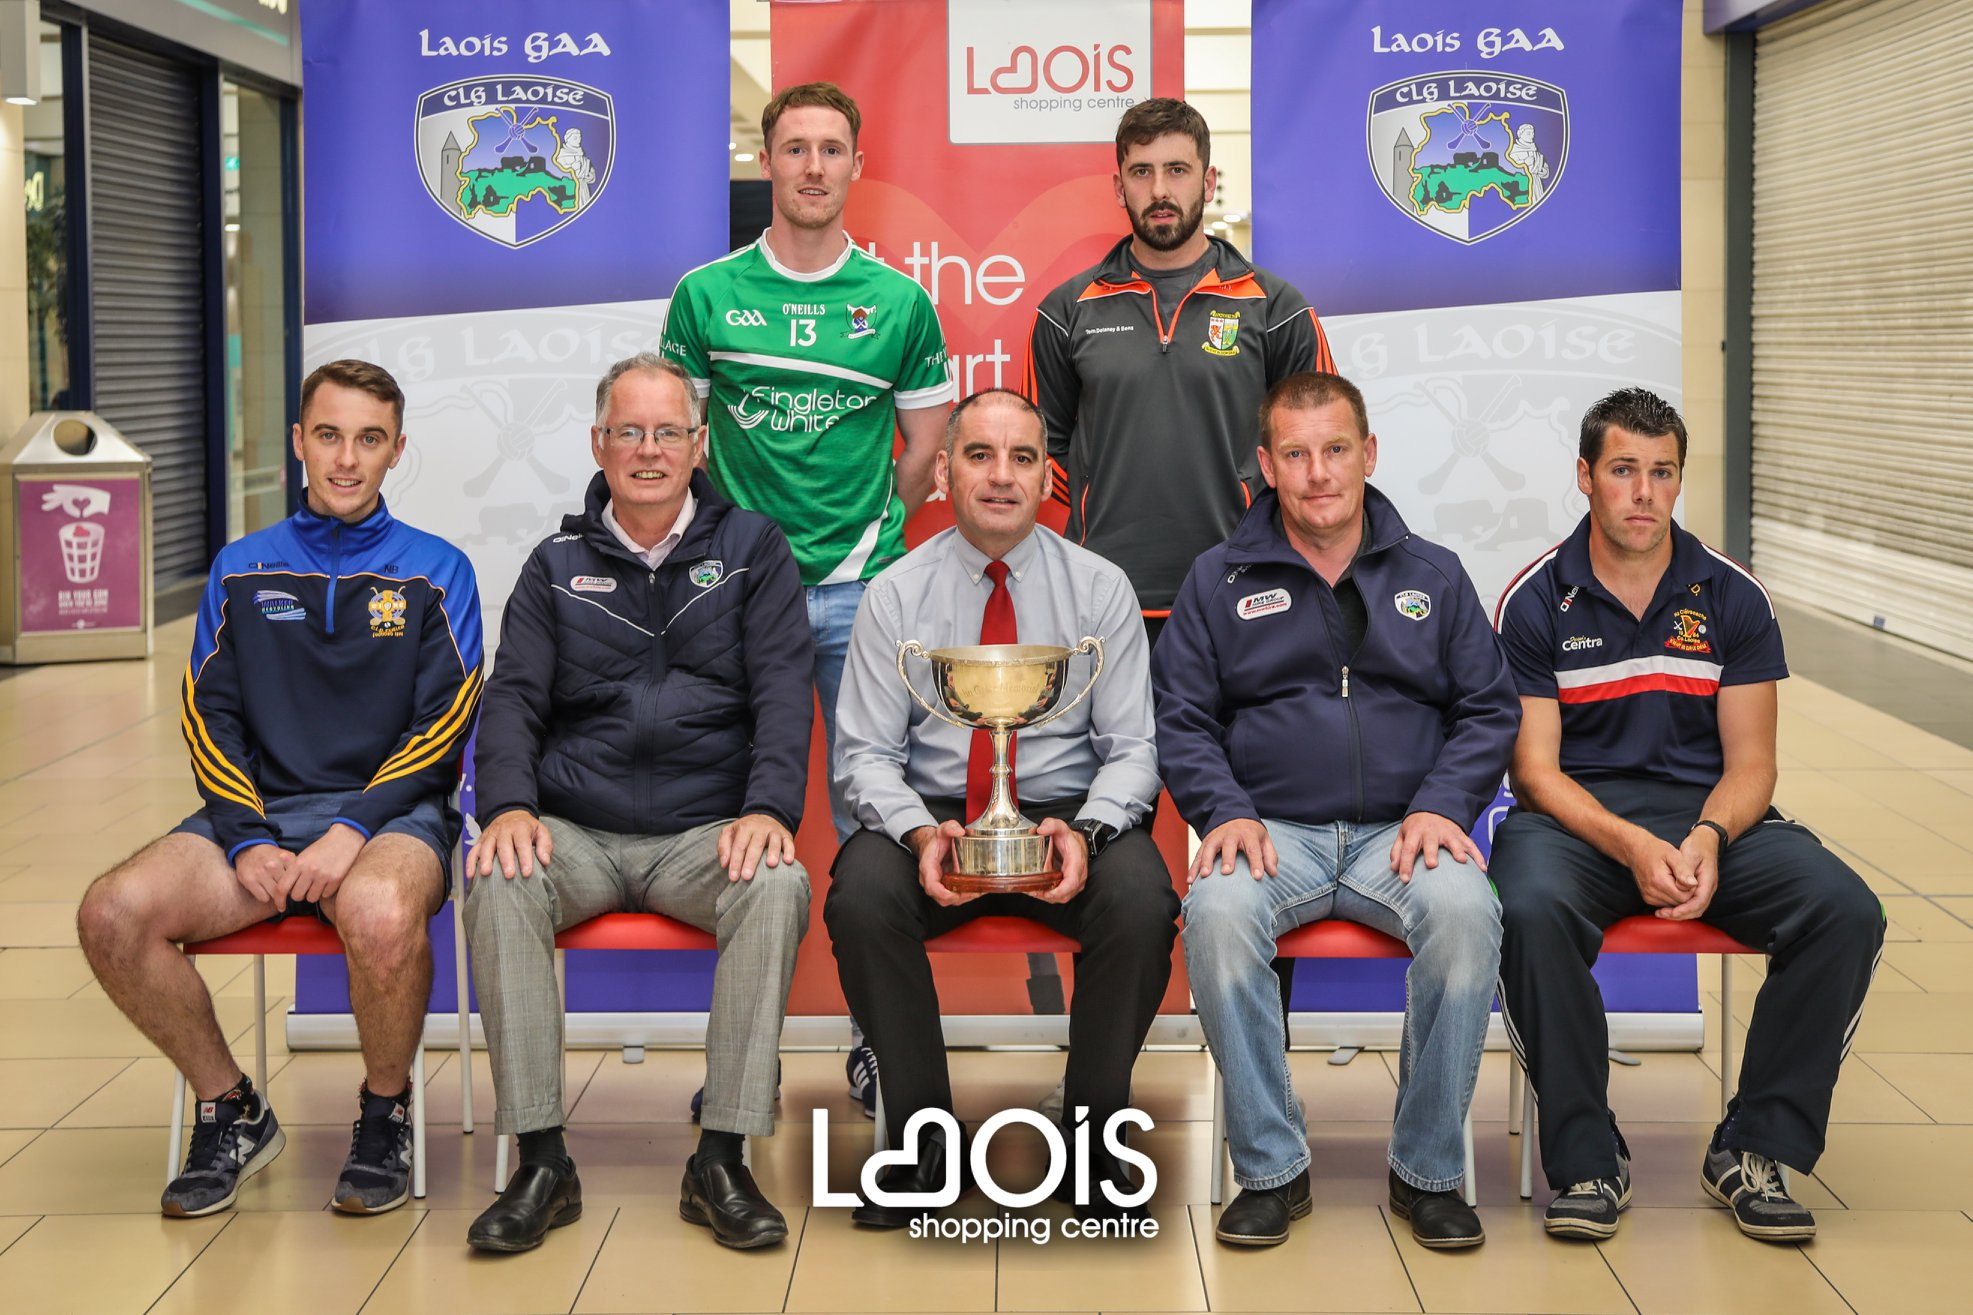 No Coronavirus tests carried out in Laois GAA grounds a